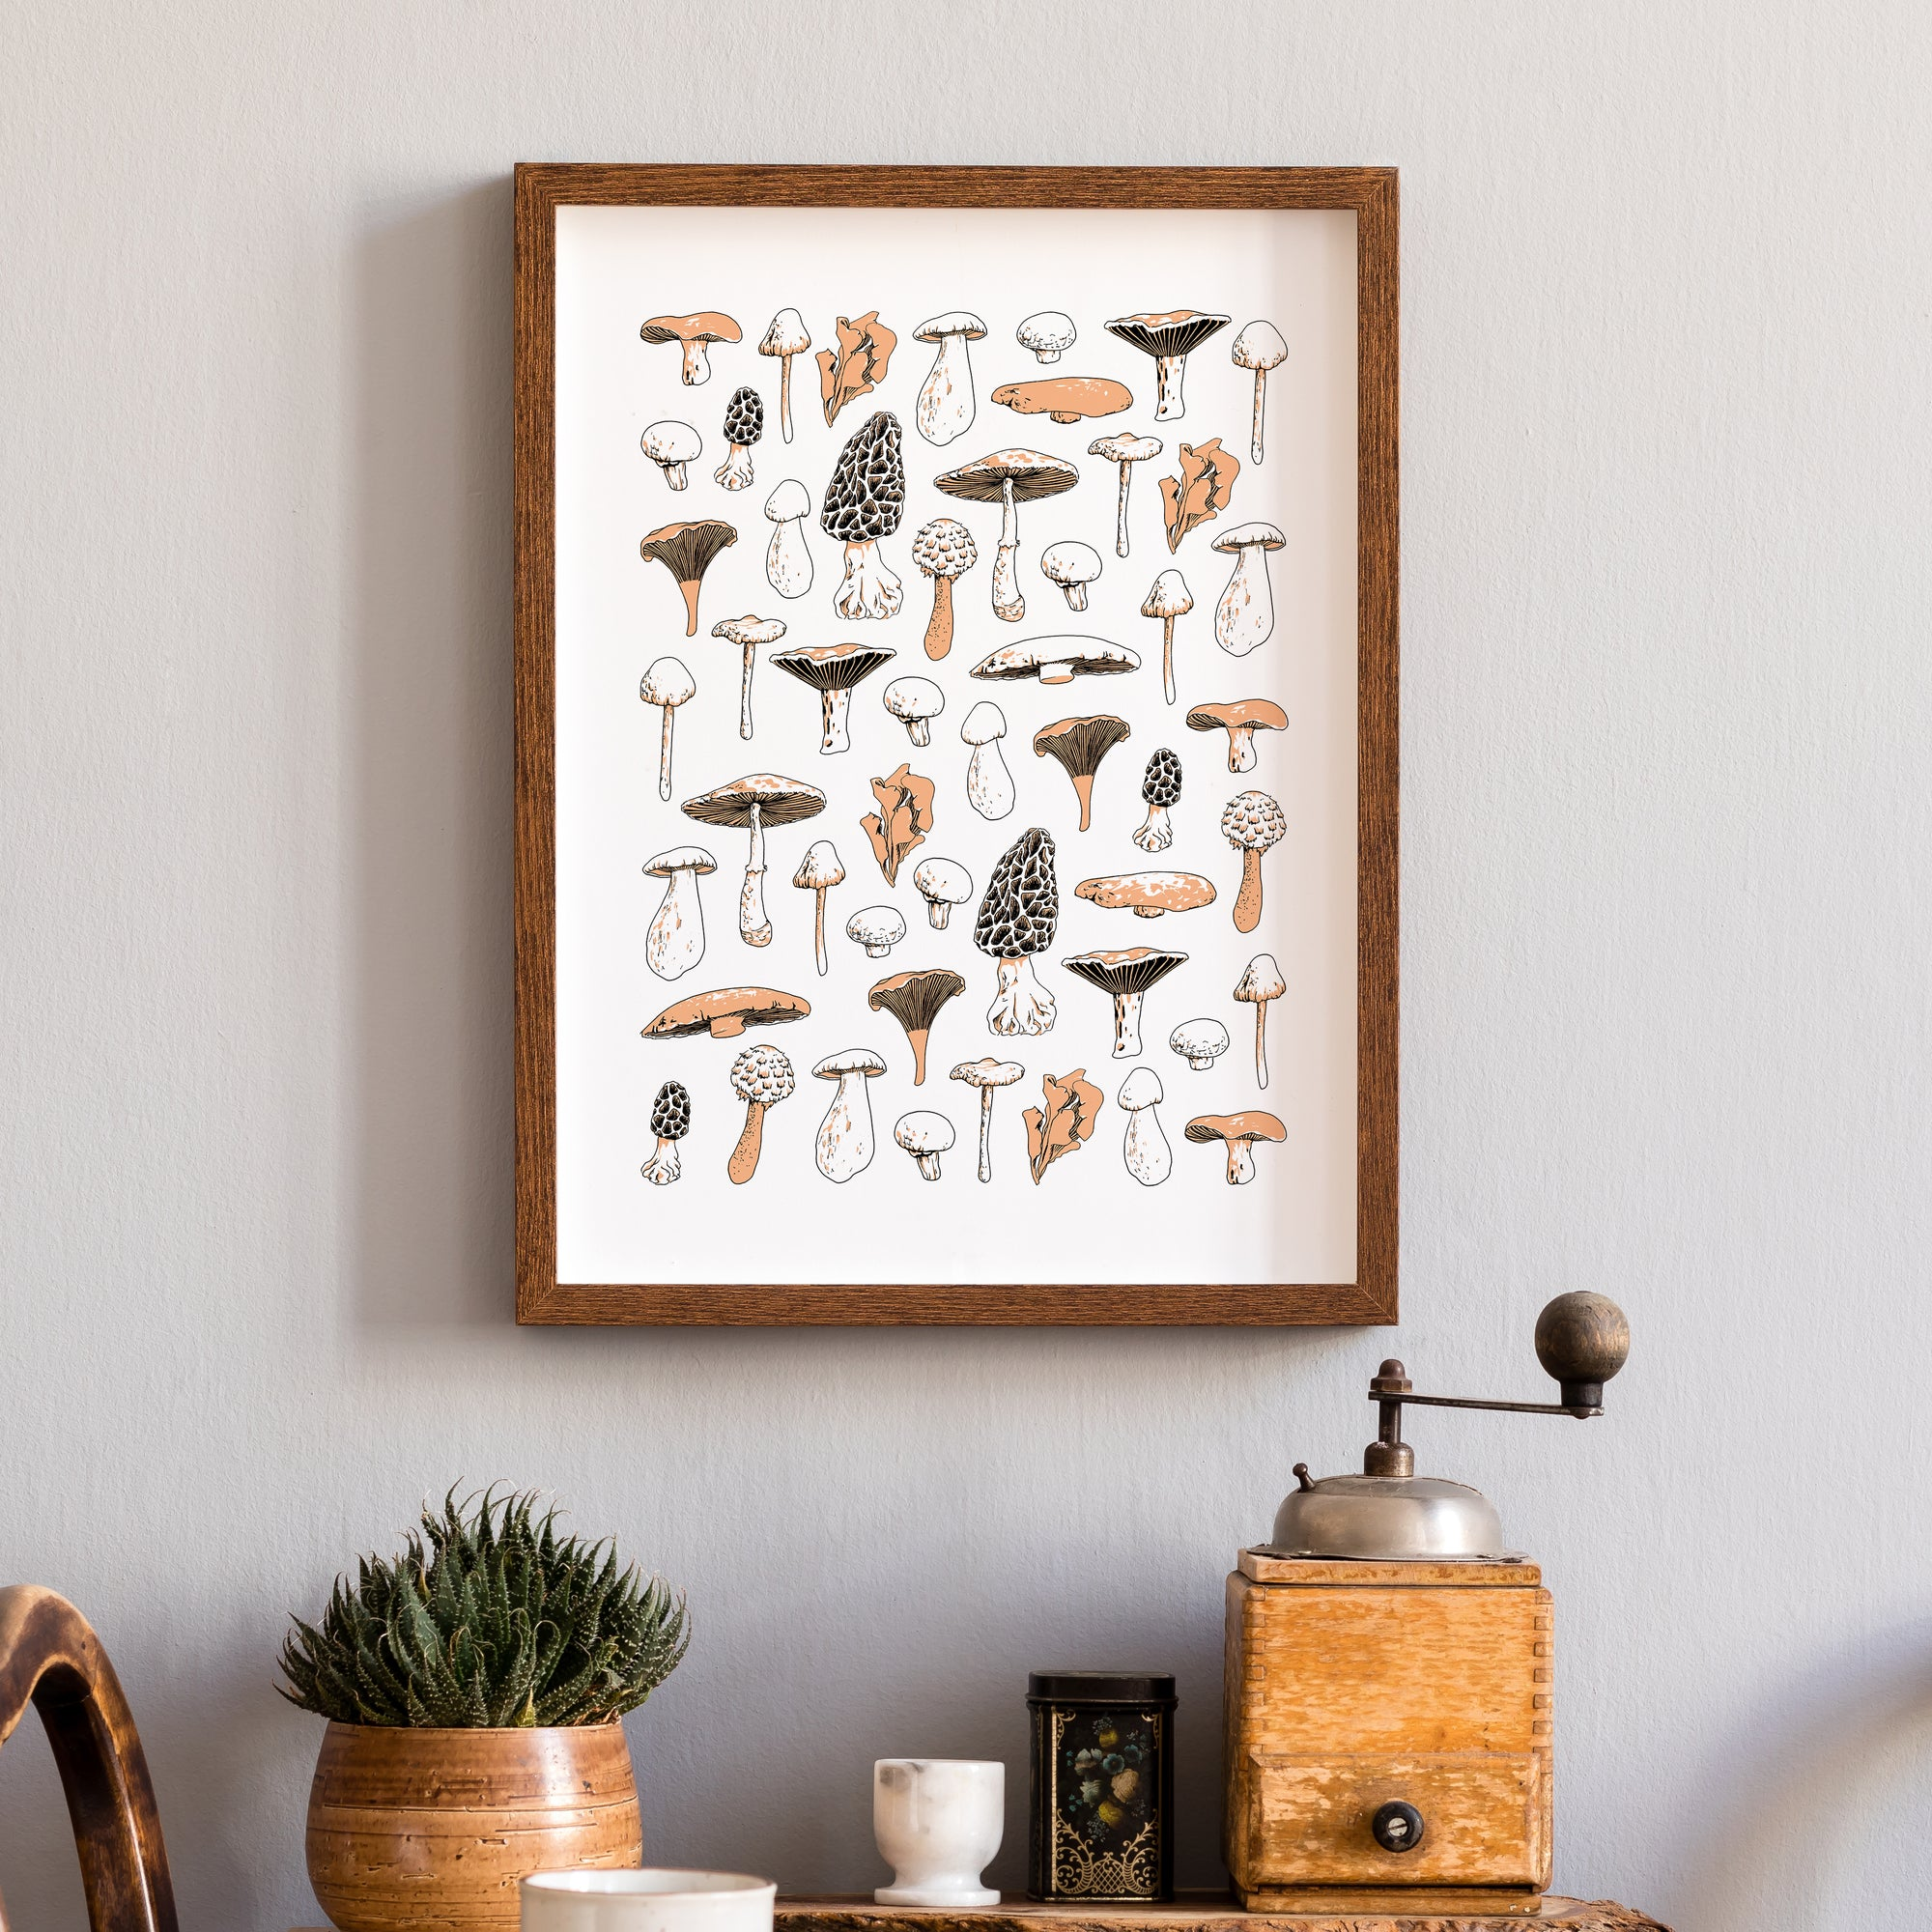 fungi mushroom types illustration art print